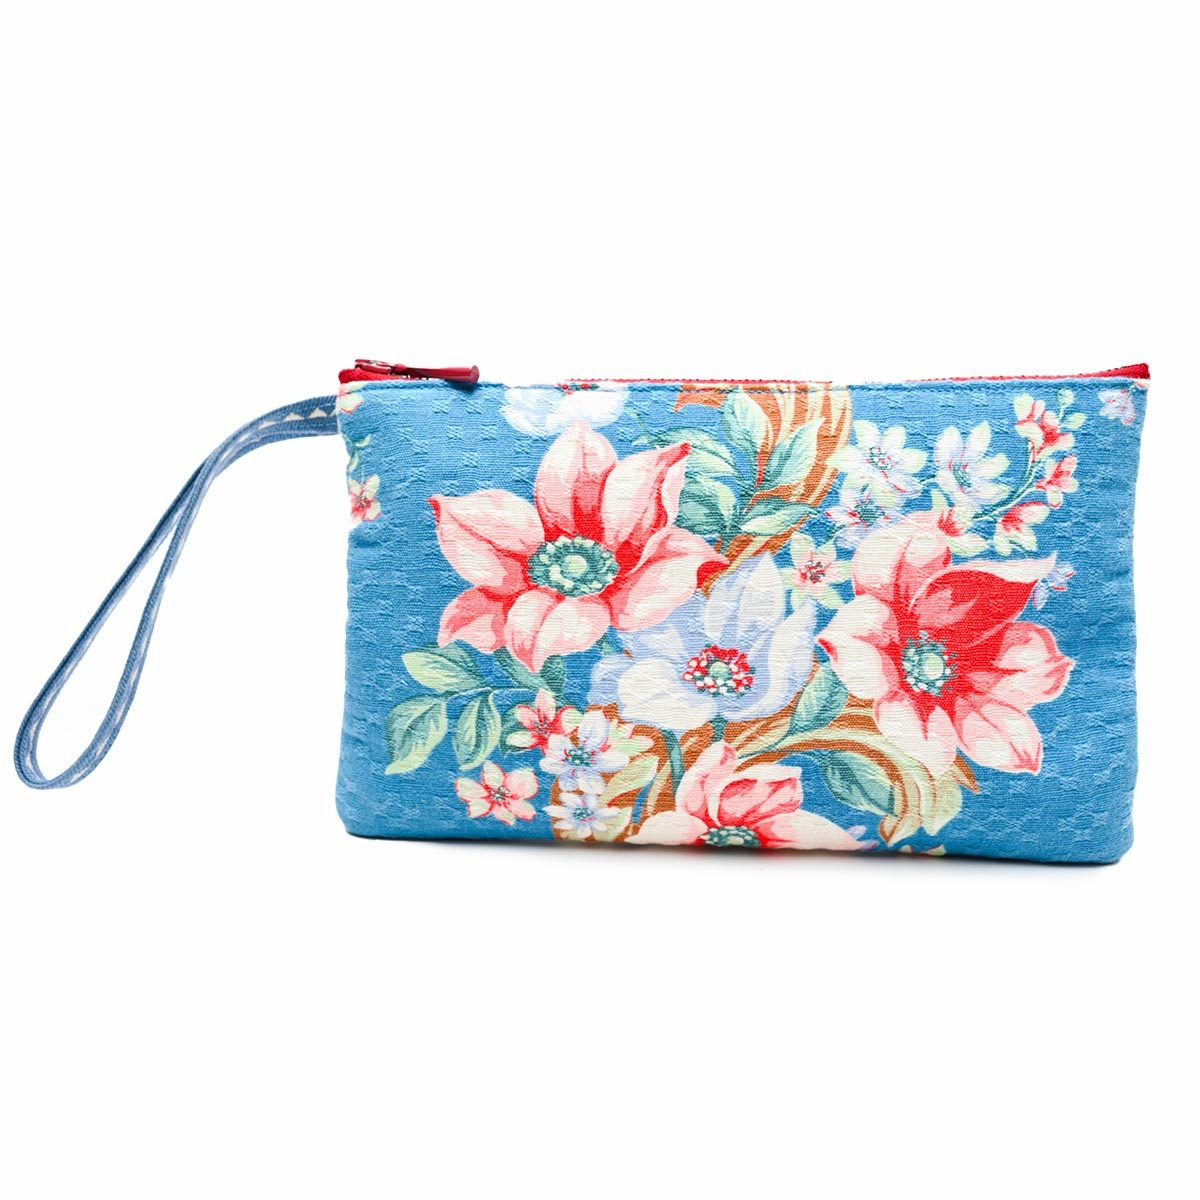 handbeaded clutch floral motif on blue